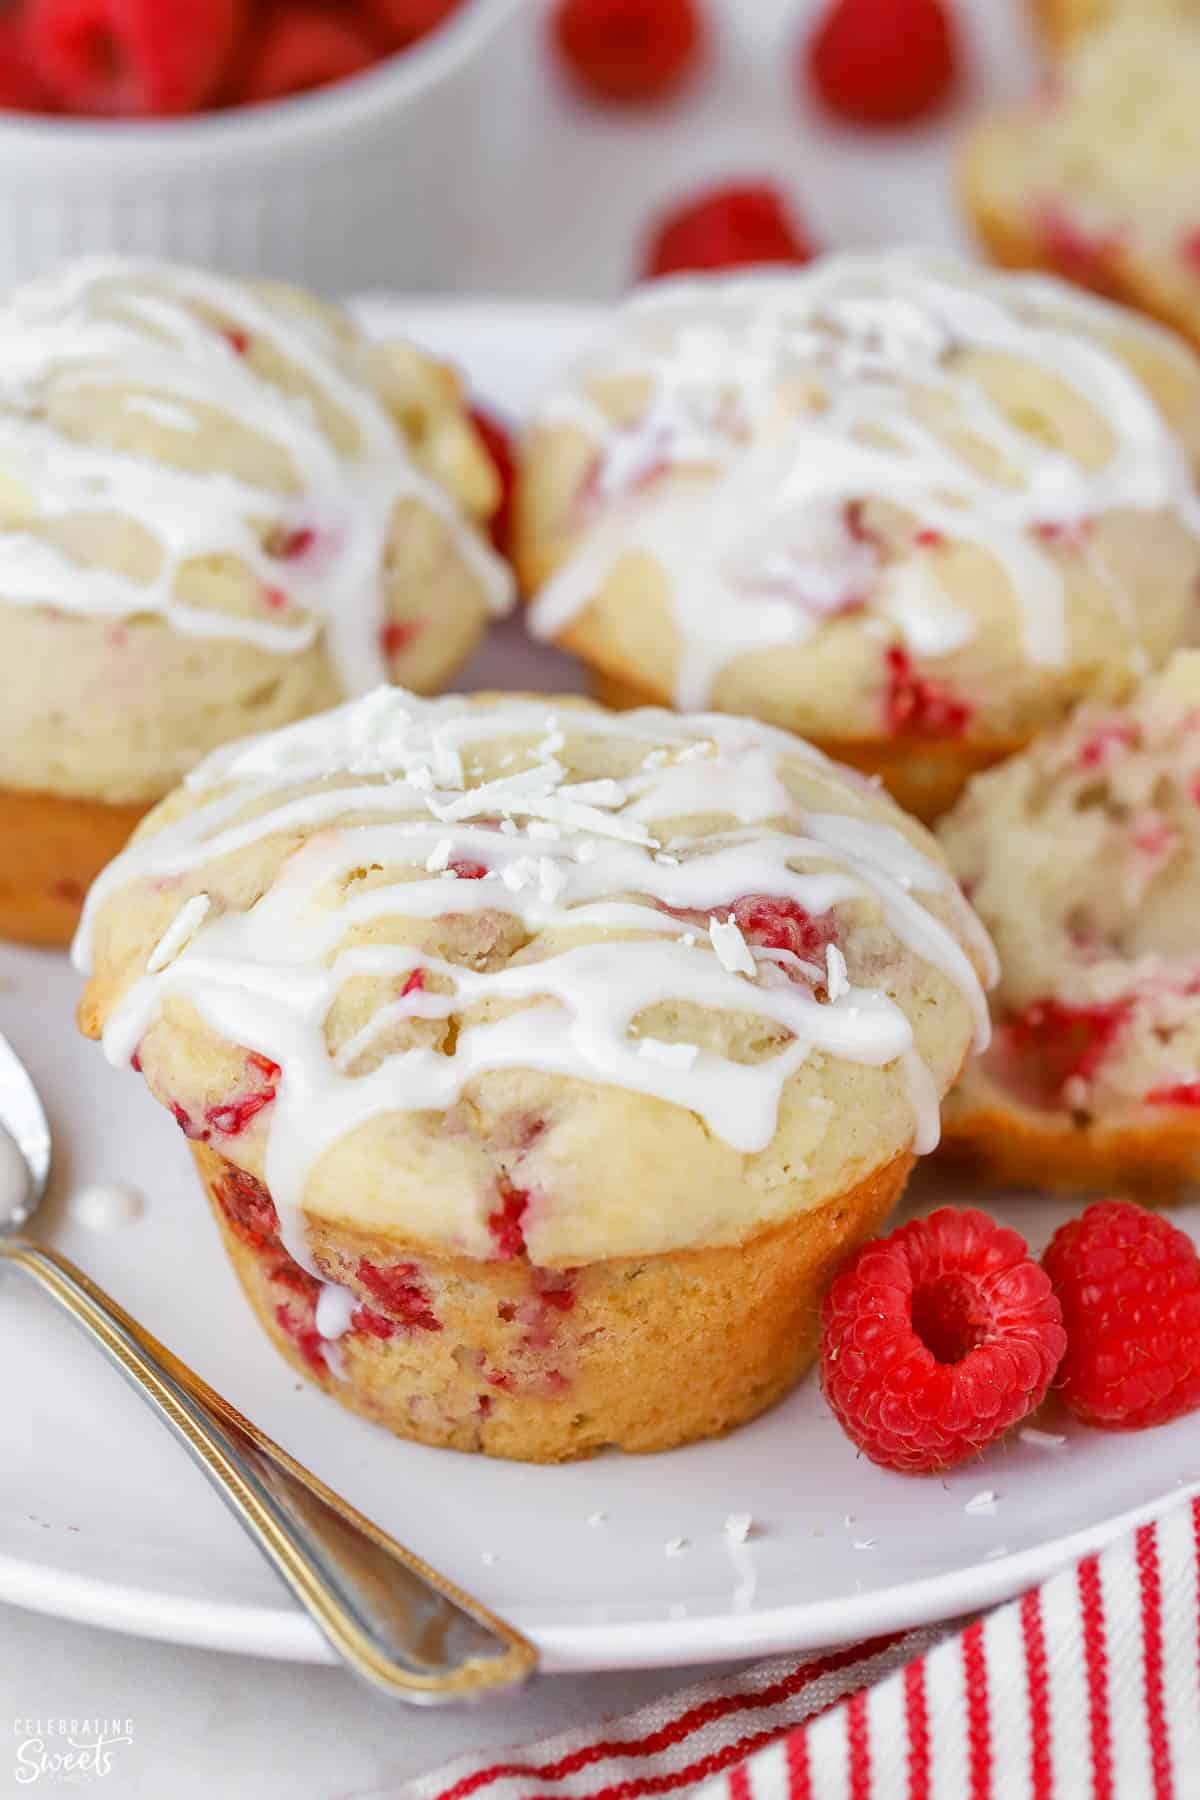 Closeup of raspberry muffins drizzled with icing.